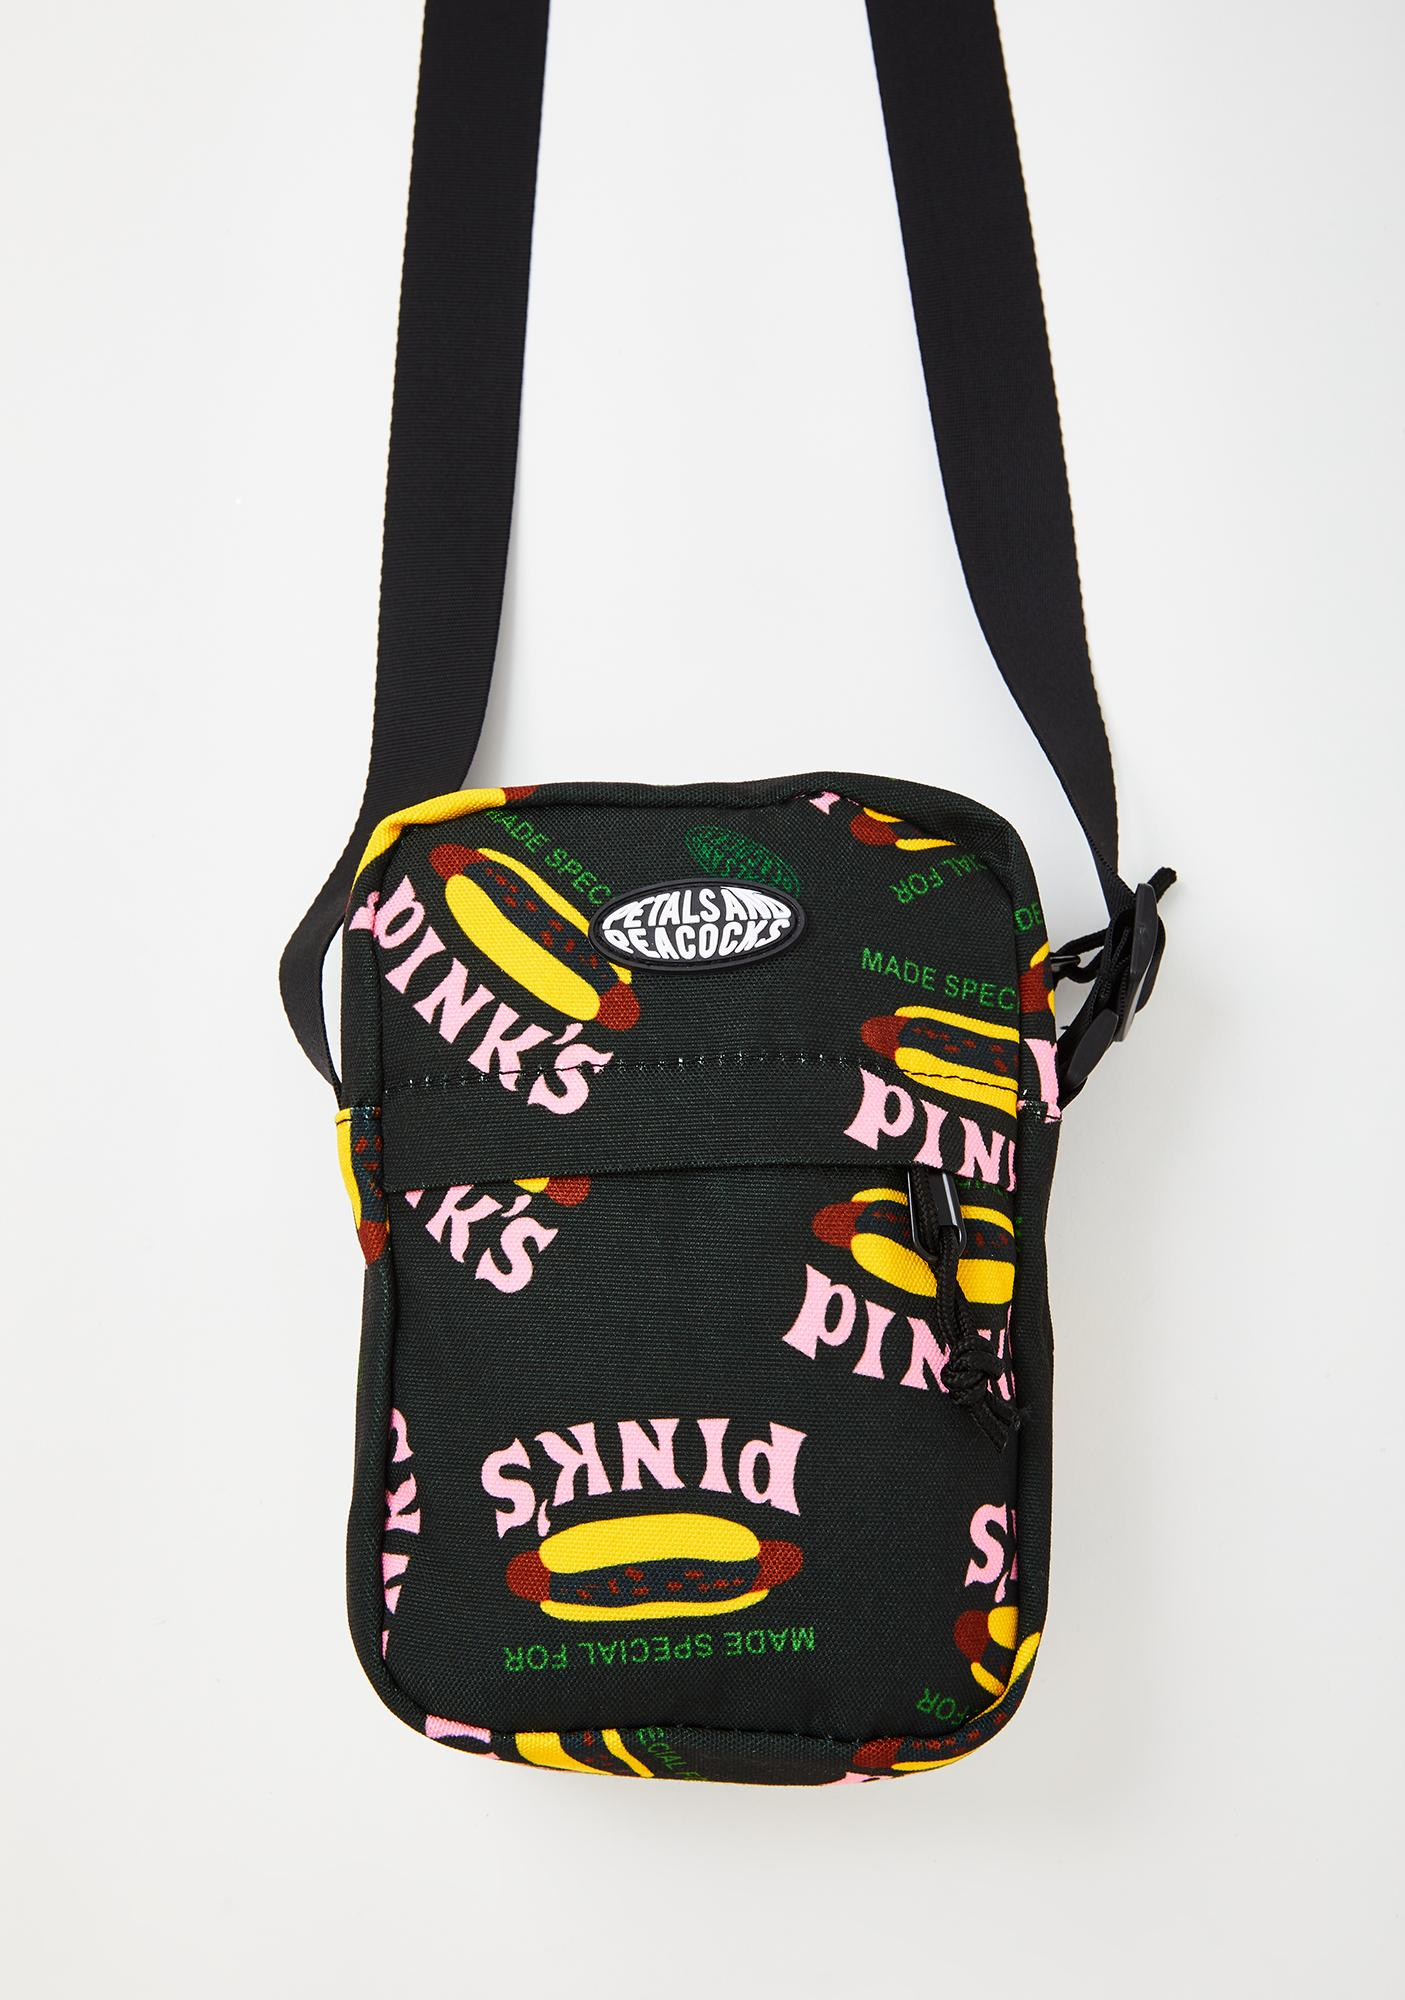 Petals and Peacocks X Pink's Hot Dogs Made Special Shoulder Bag